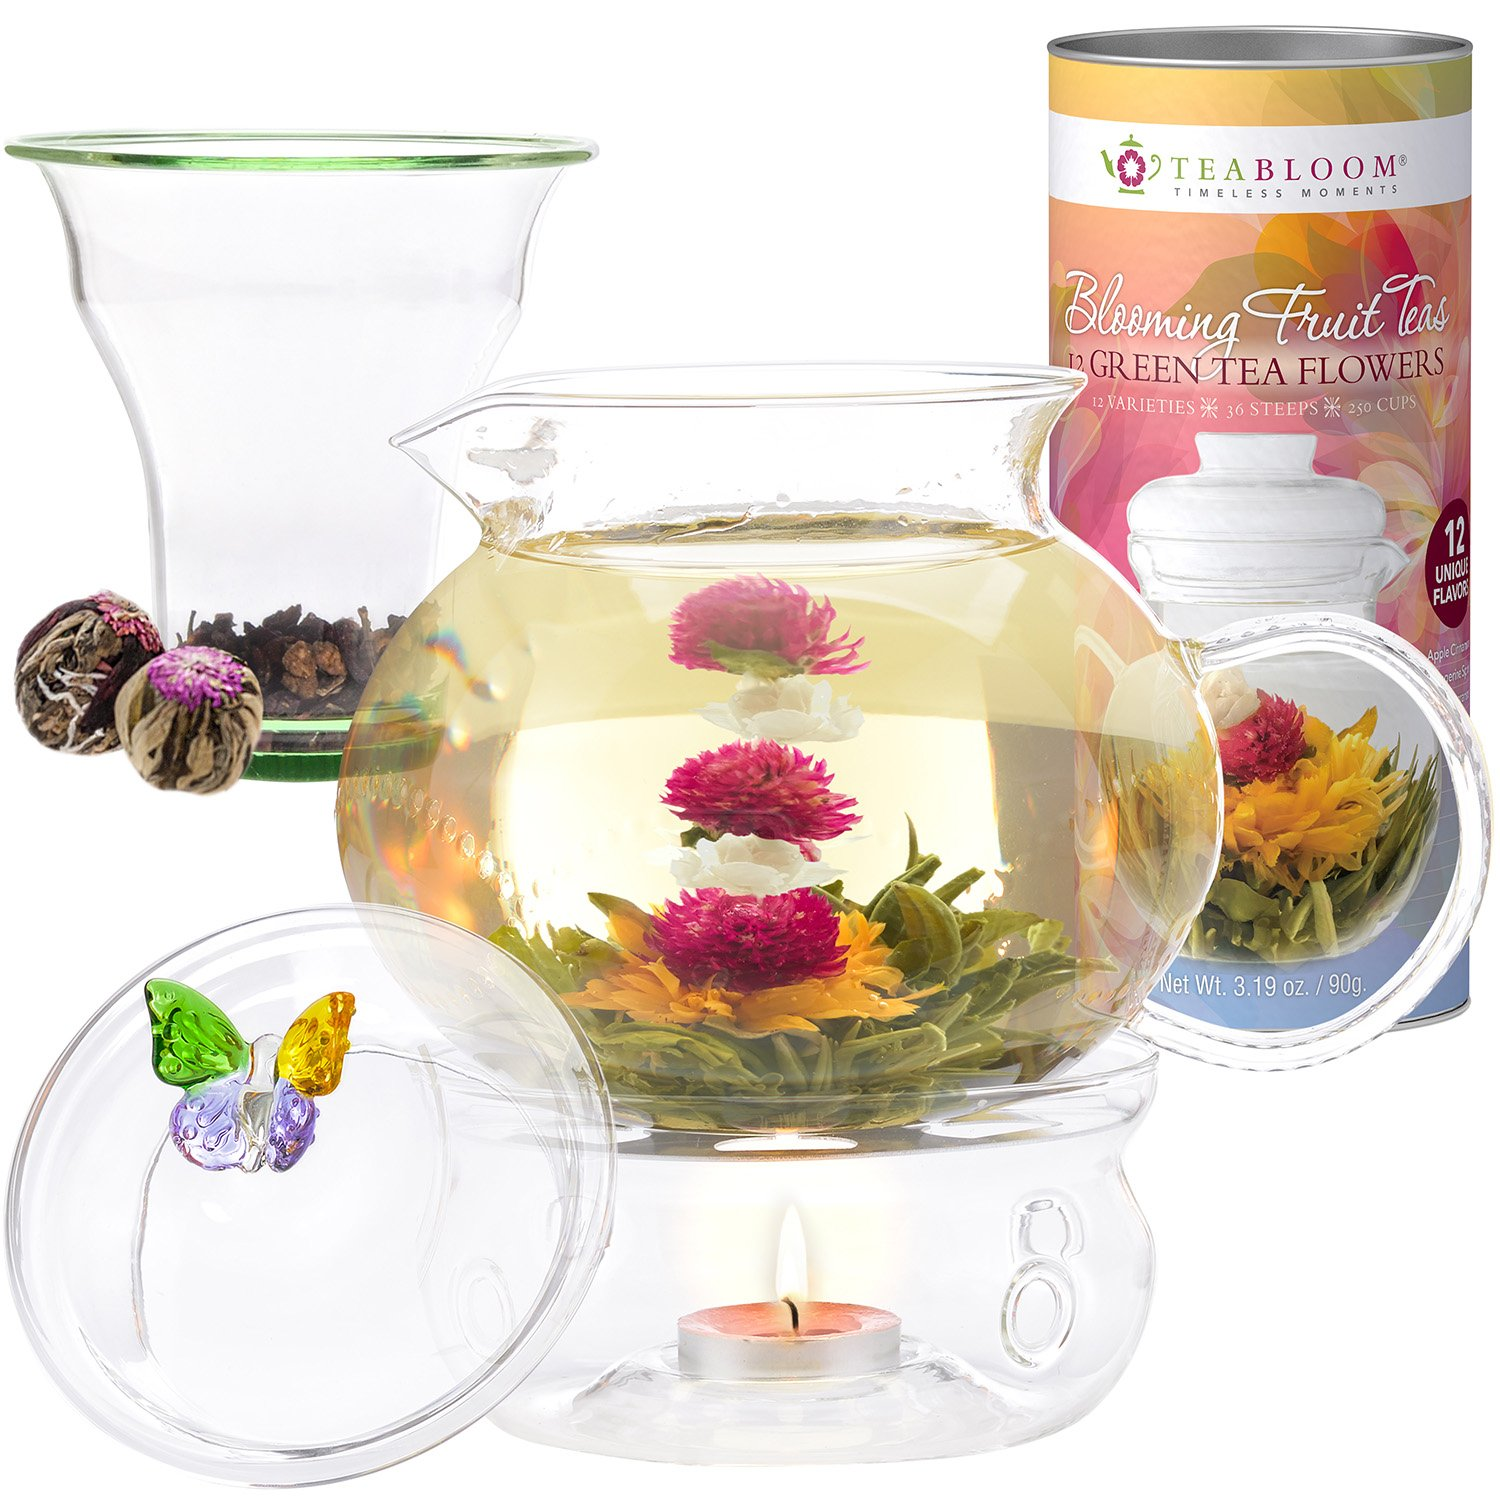 Teabloom Wings of Love Blooming Tea Gift Set - 40 oz Borosilicate Glass Teapot, Teapot Warmer, Glass Loose Tea Infuser, 12 Fruit Flowering Tea Canister